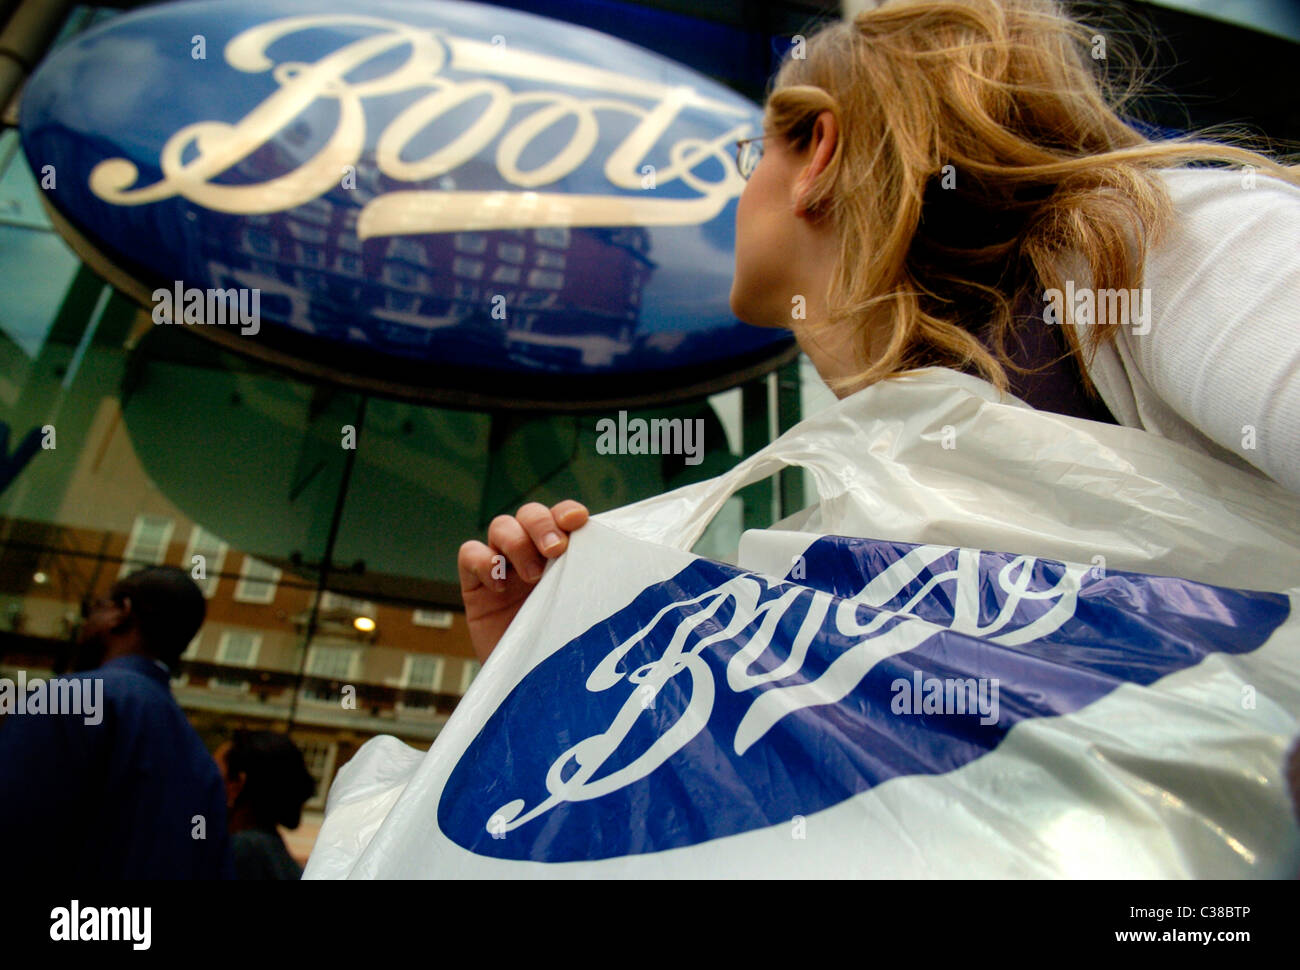 A woman with a Boots shopping bag on Oxford Street, London - Stock Image